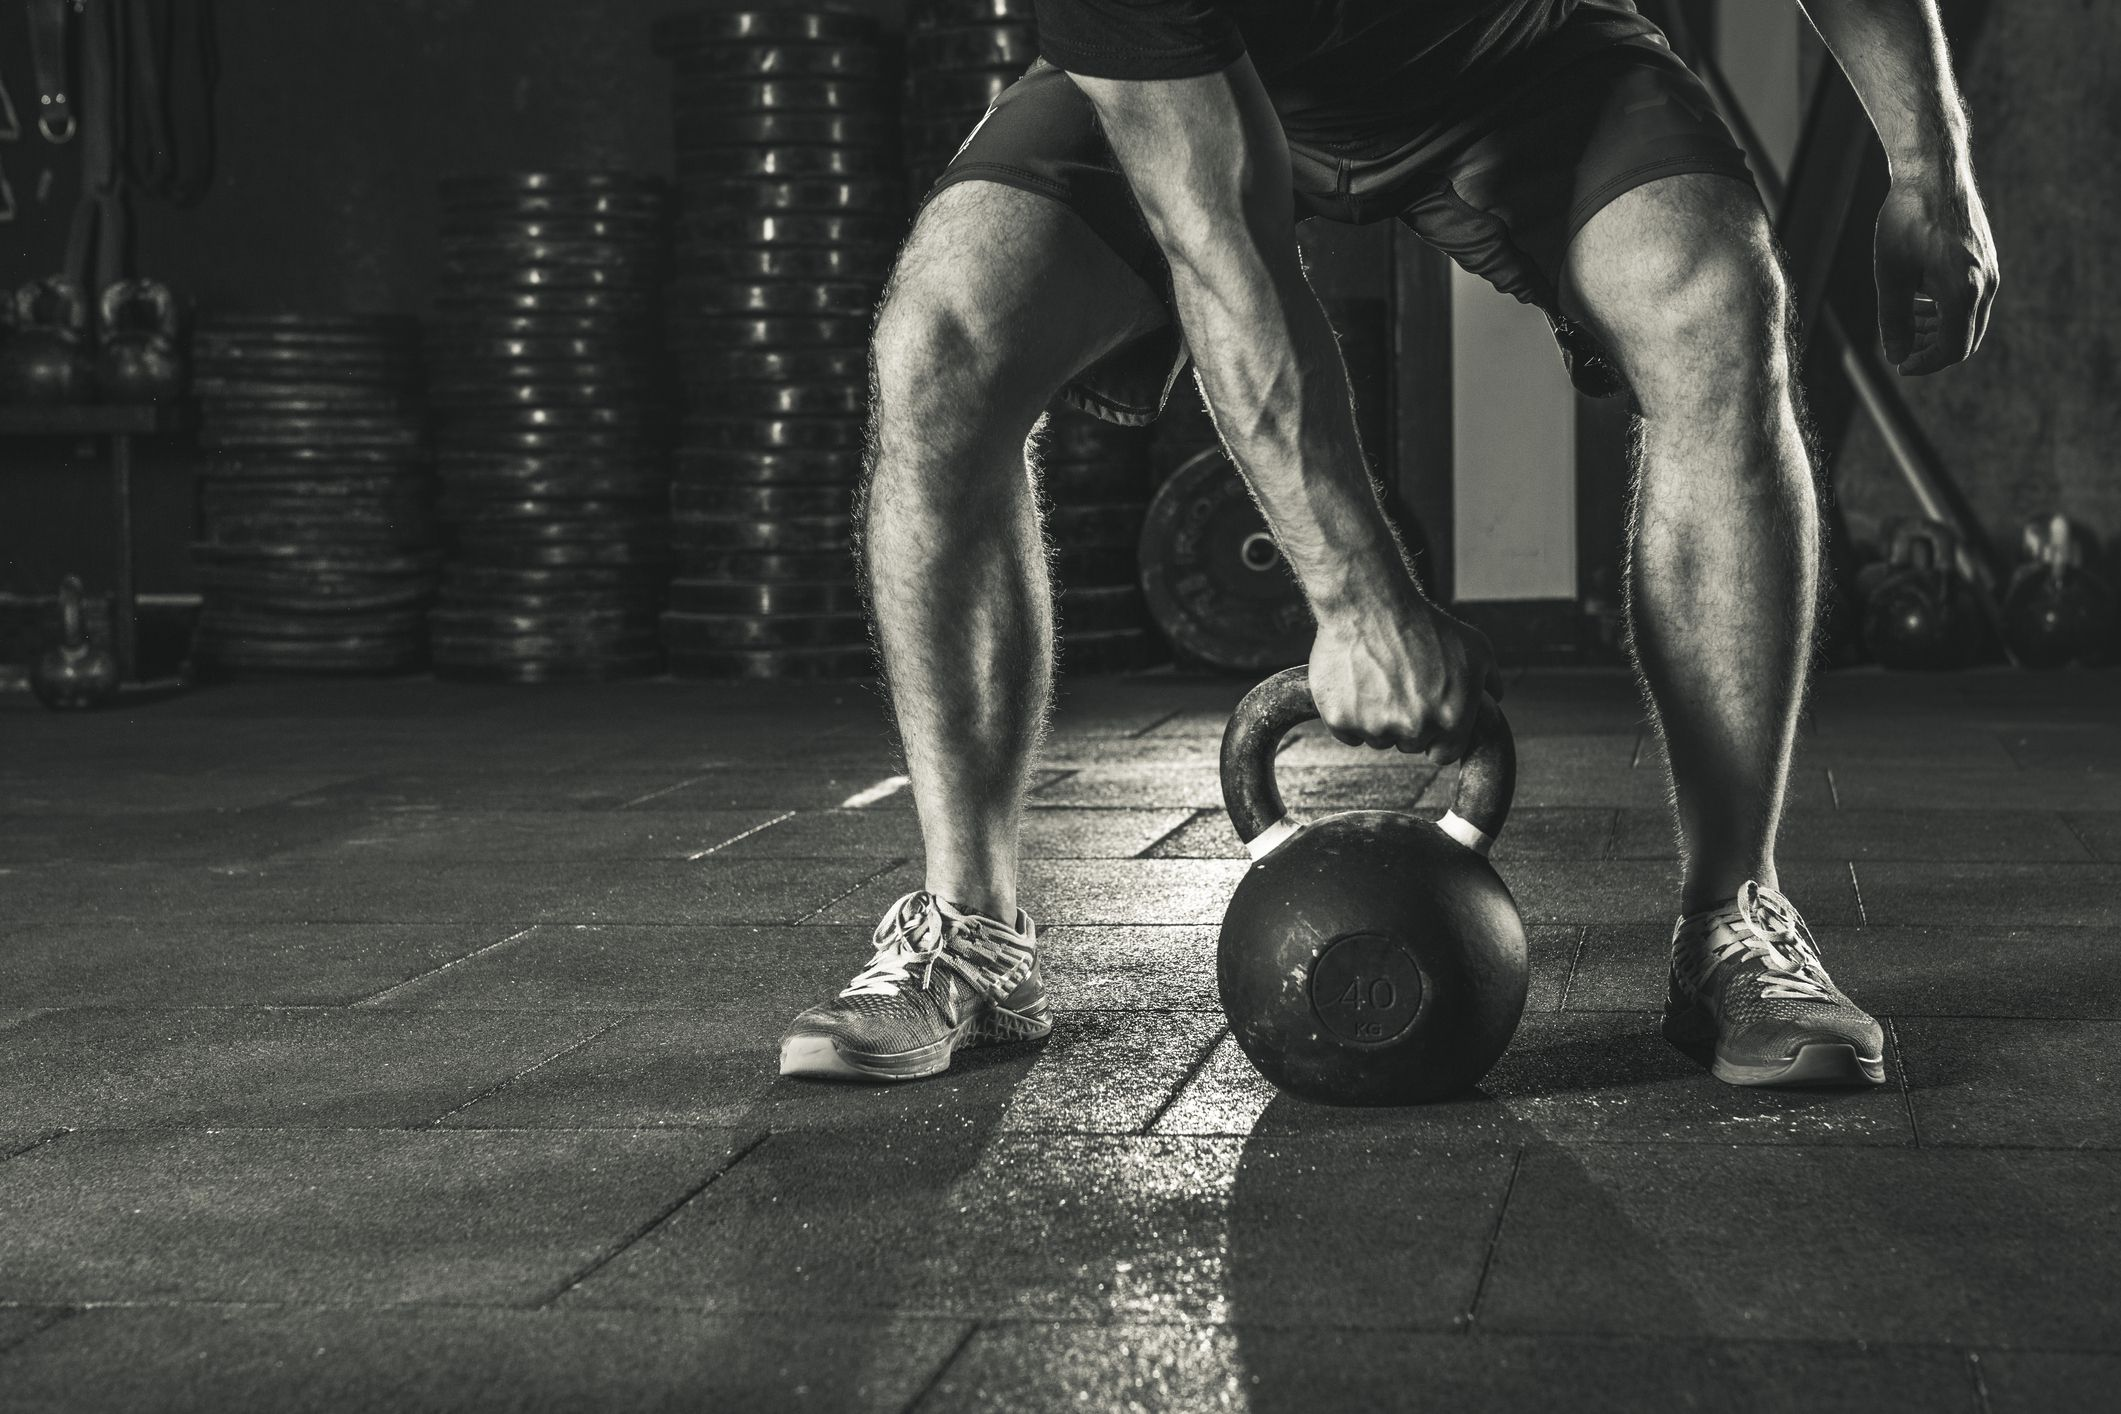 New Study Suggests Lifting Weights Could Help You Survive Cancer